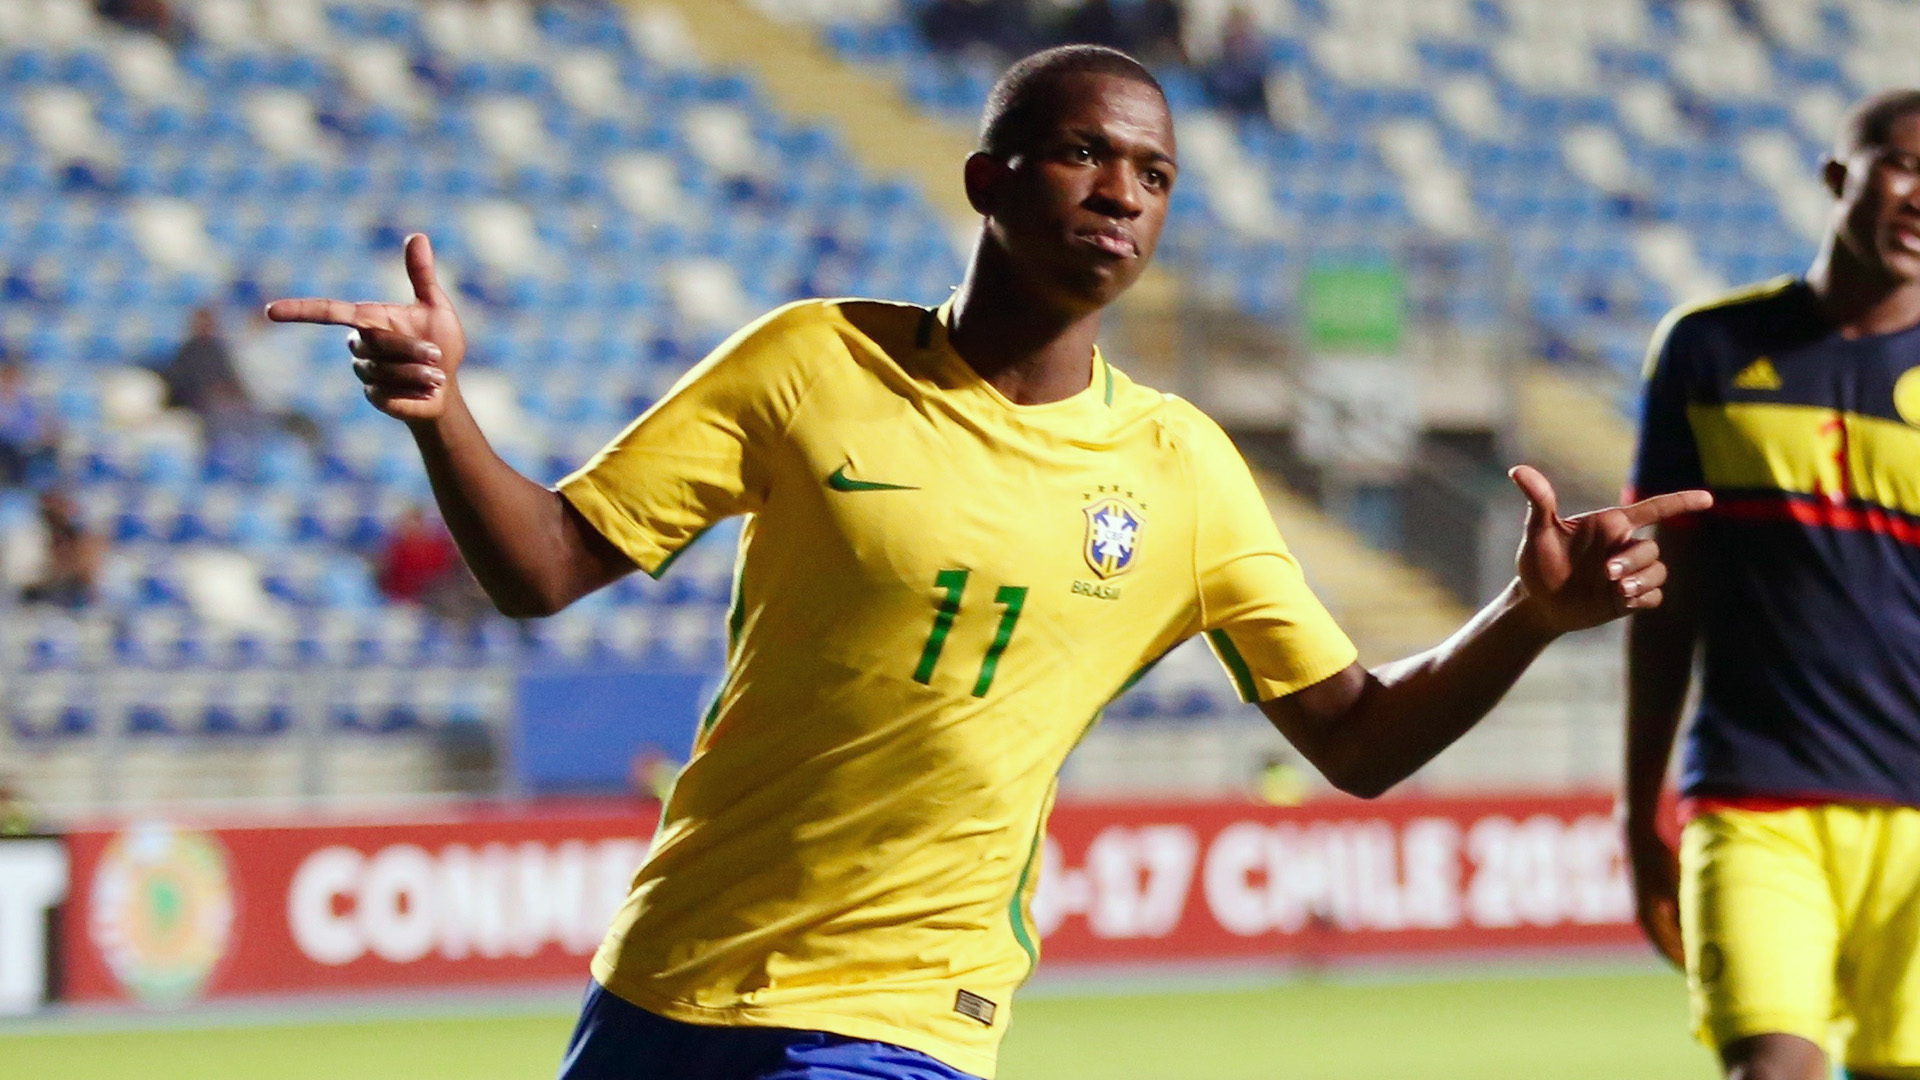 Real Madrid nearing deal for Brazilian teenager